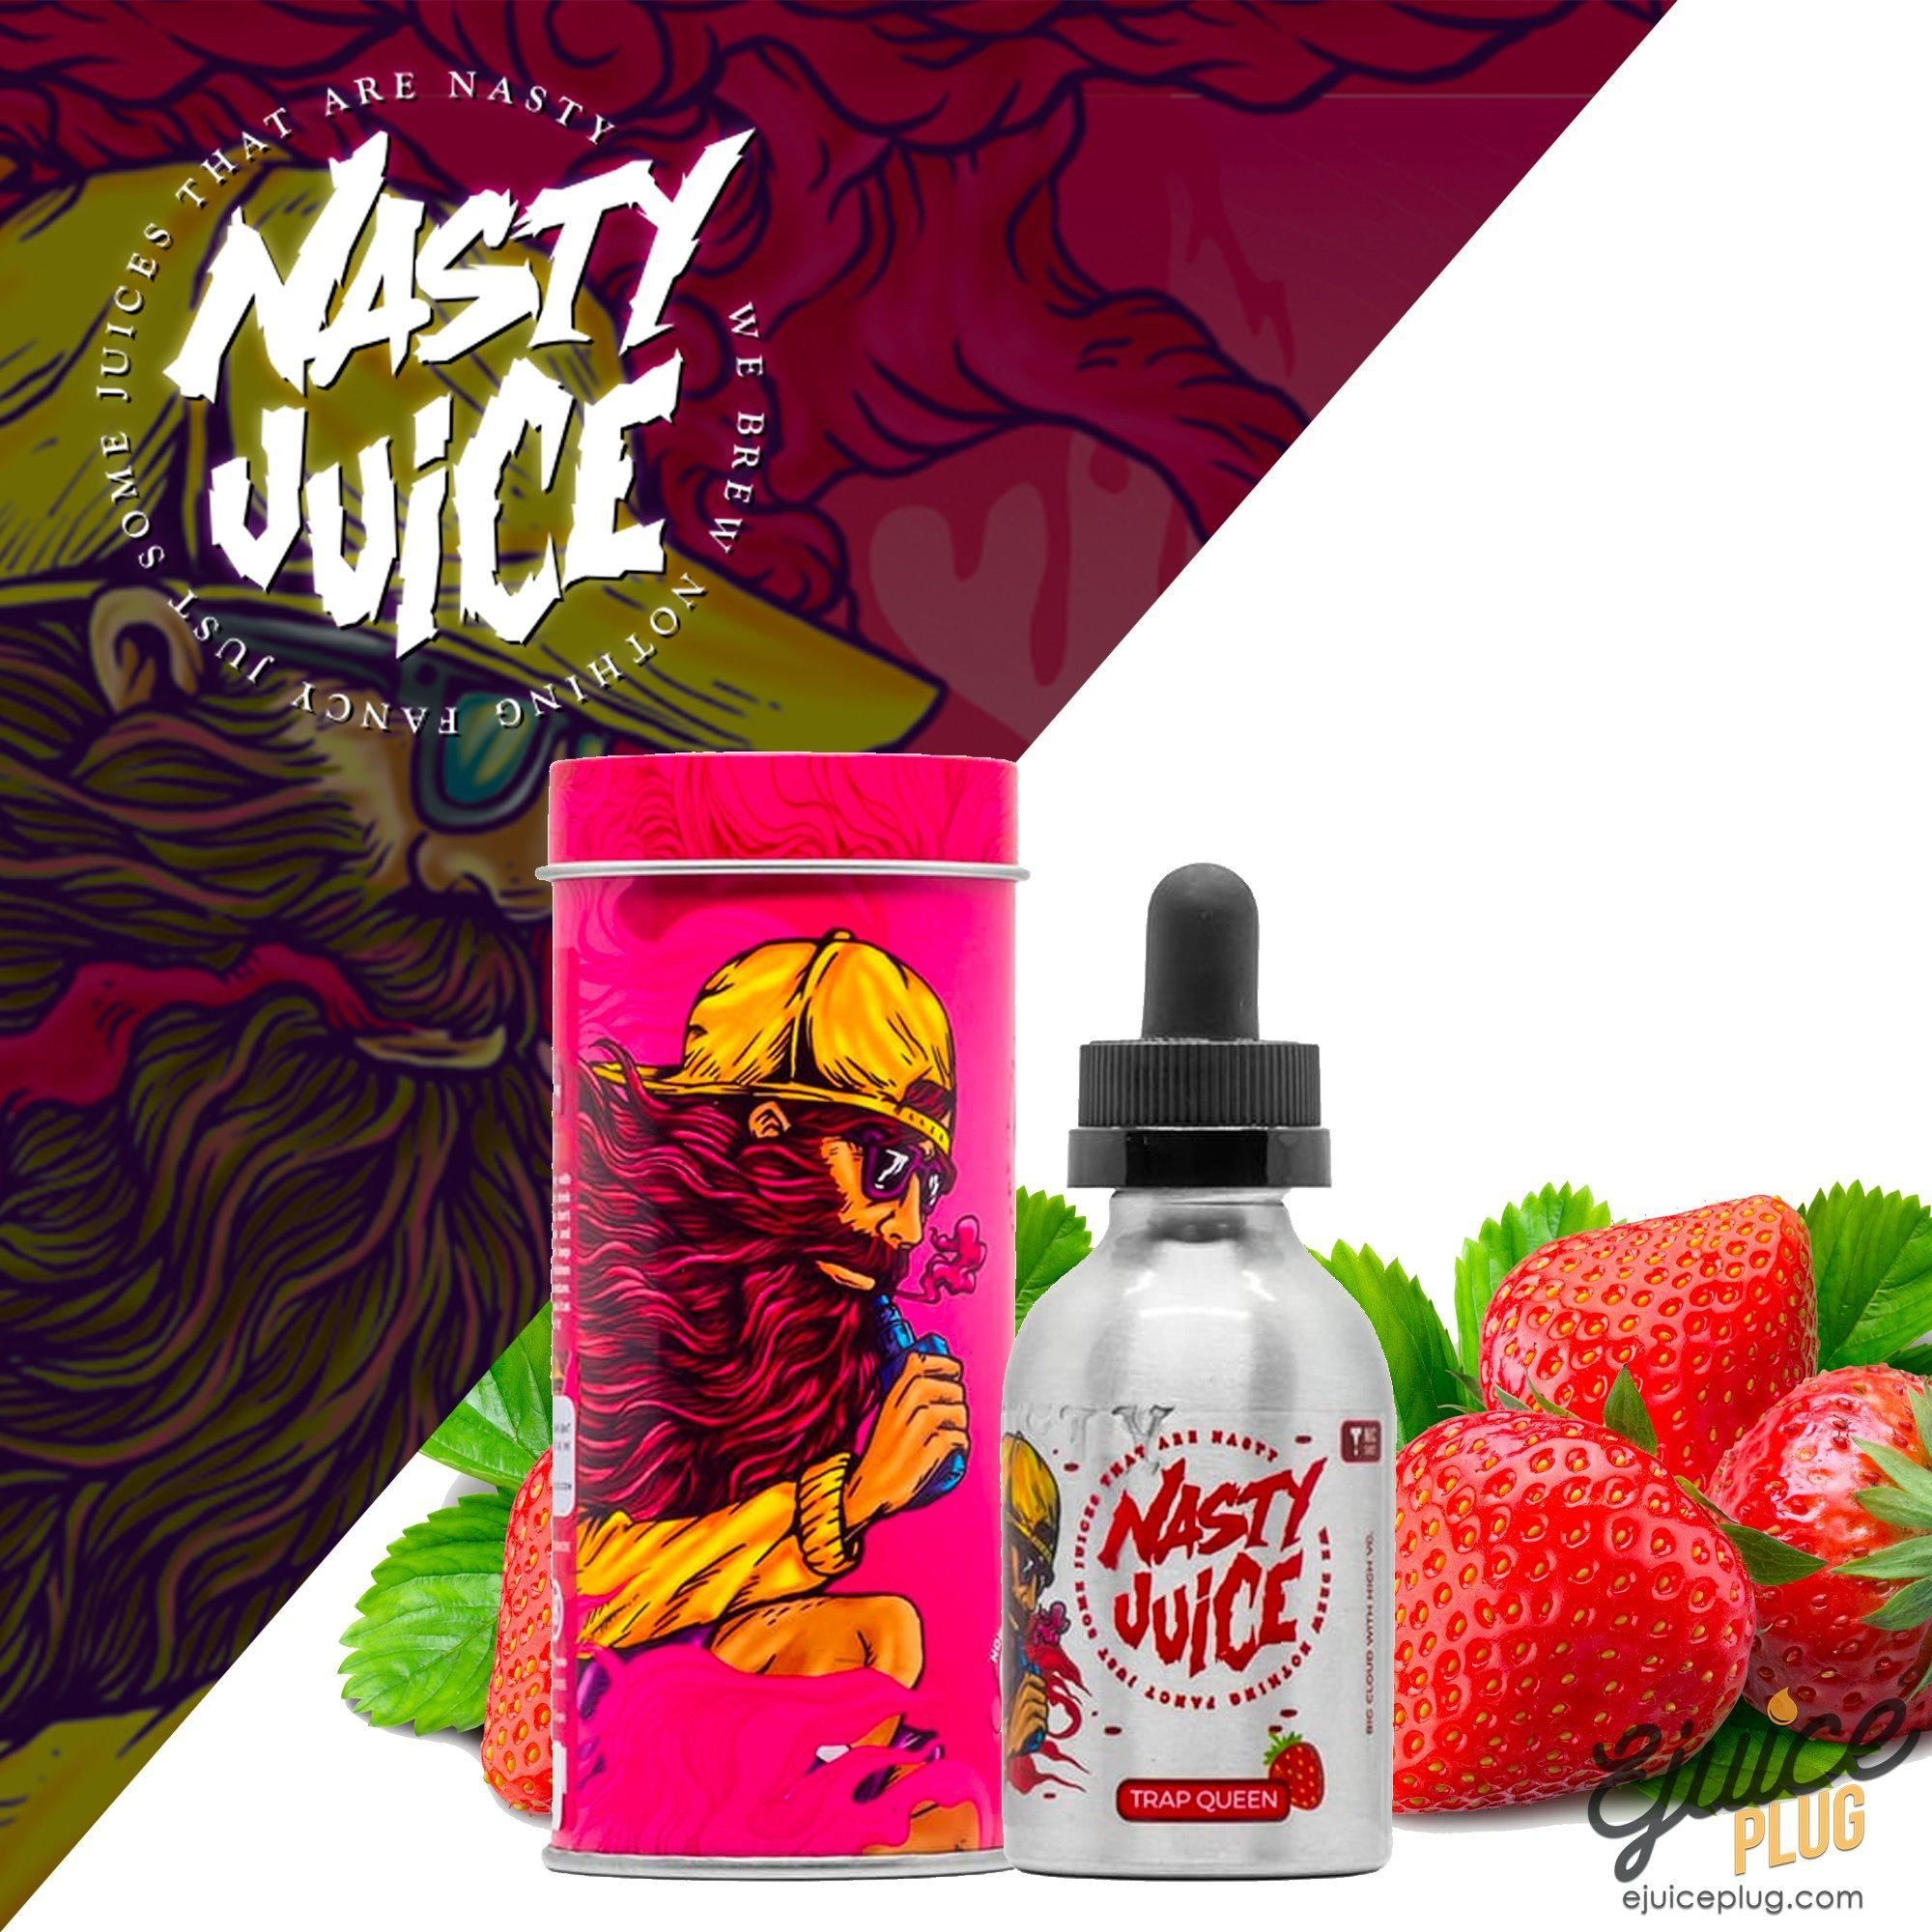 Trap Queen by Nasty Juice 60ml